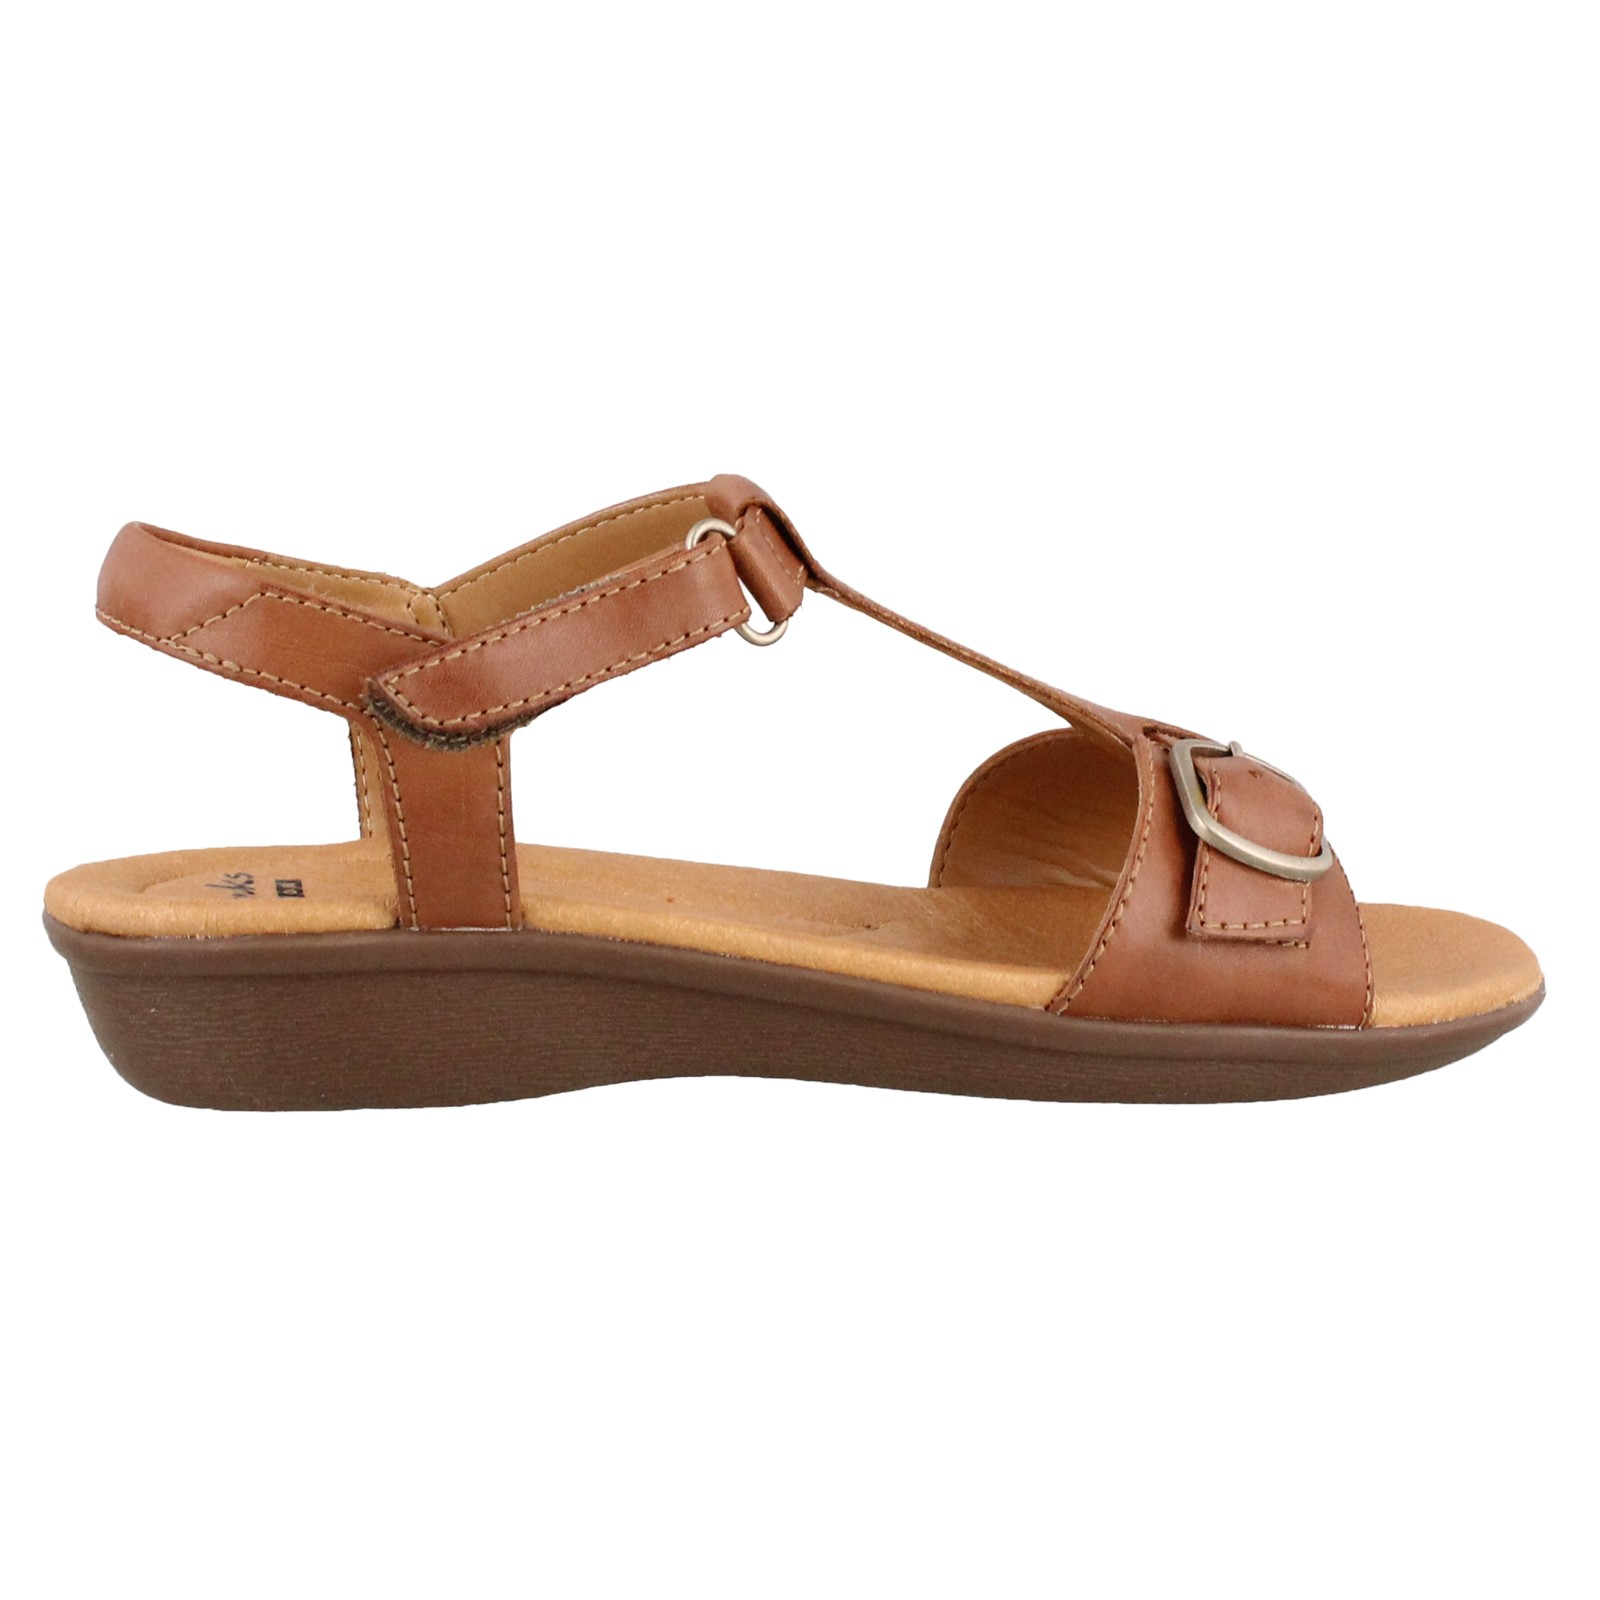 Women's Clarks, Manilla Lift Low Heel Sandal